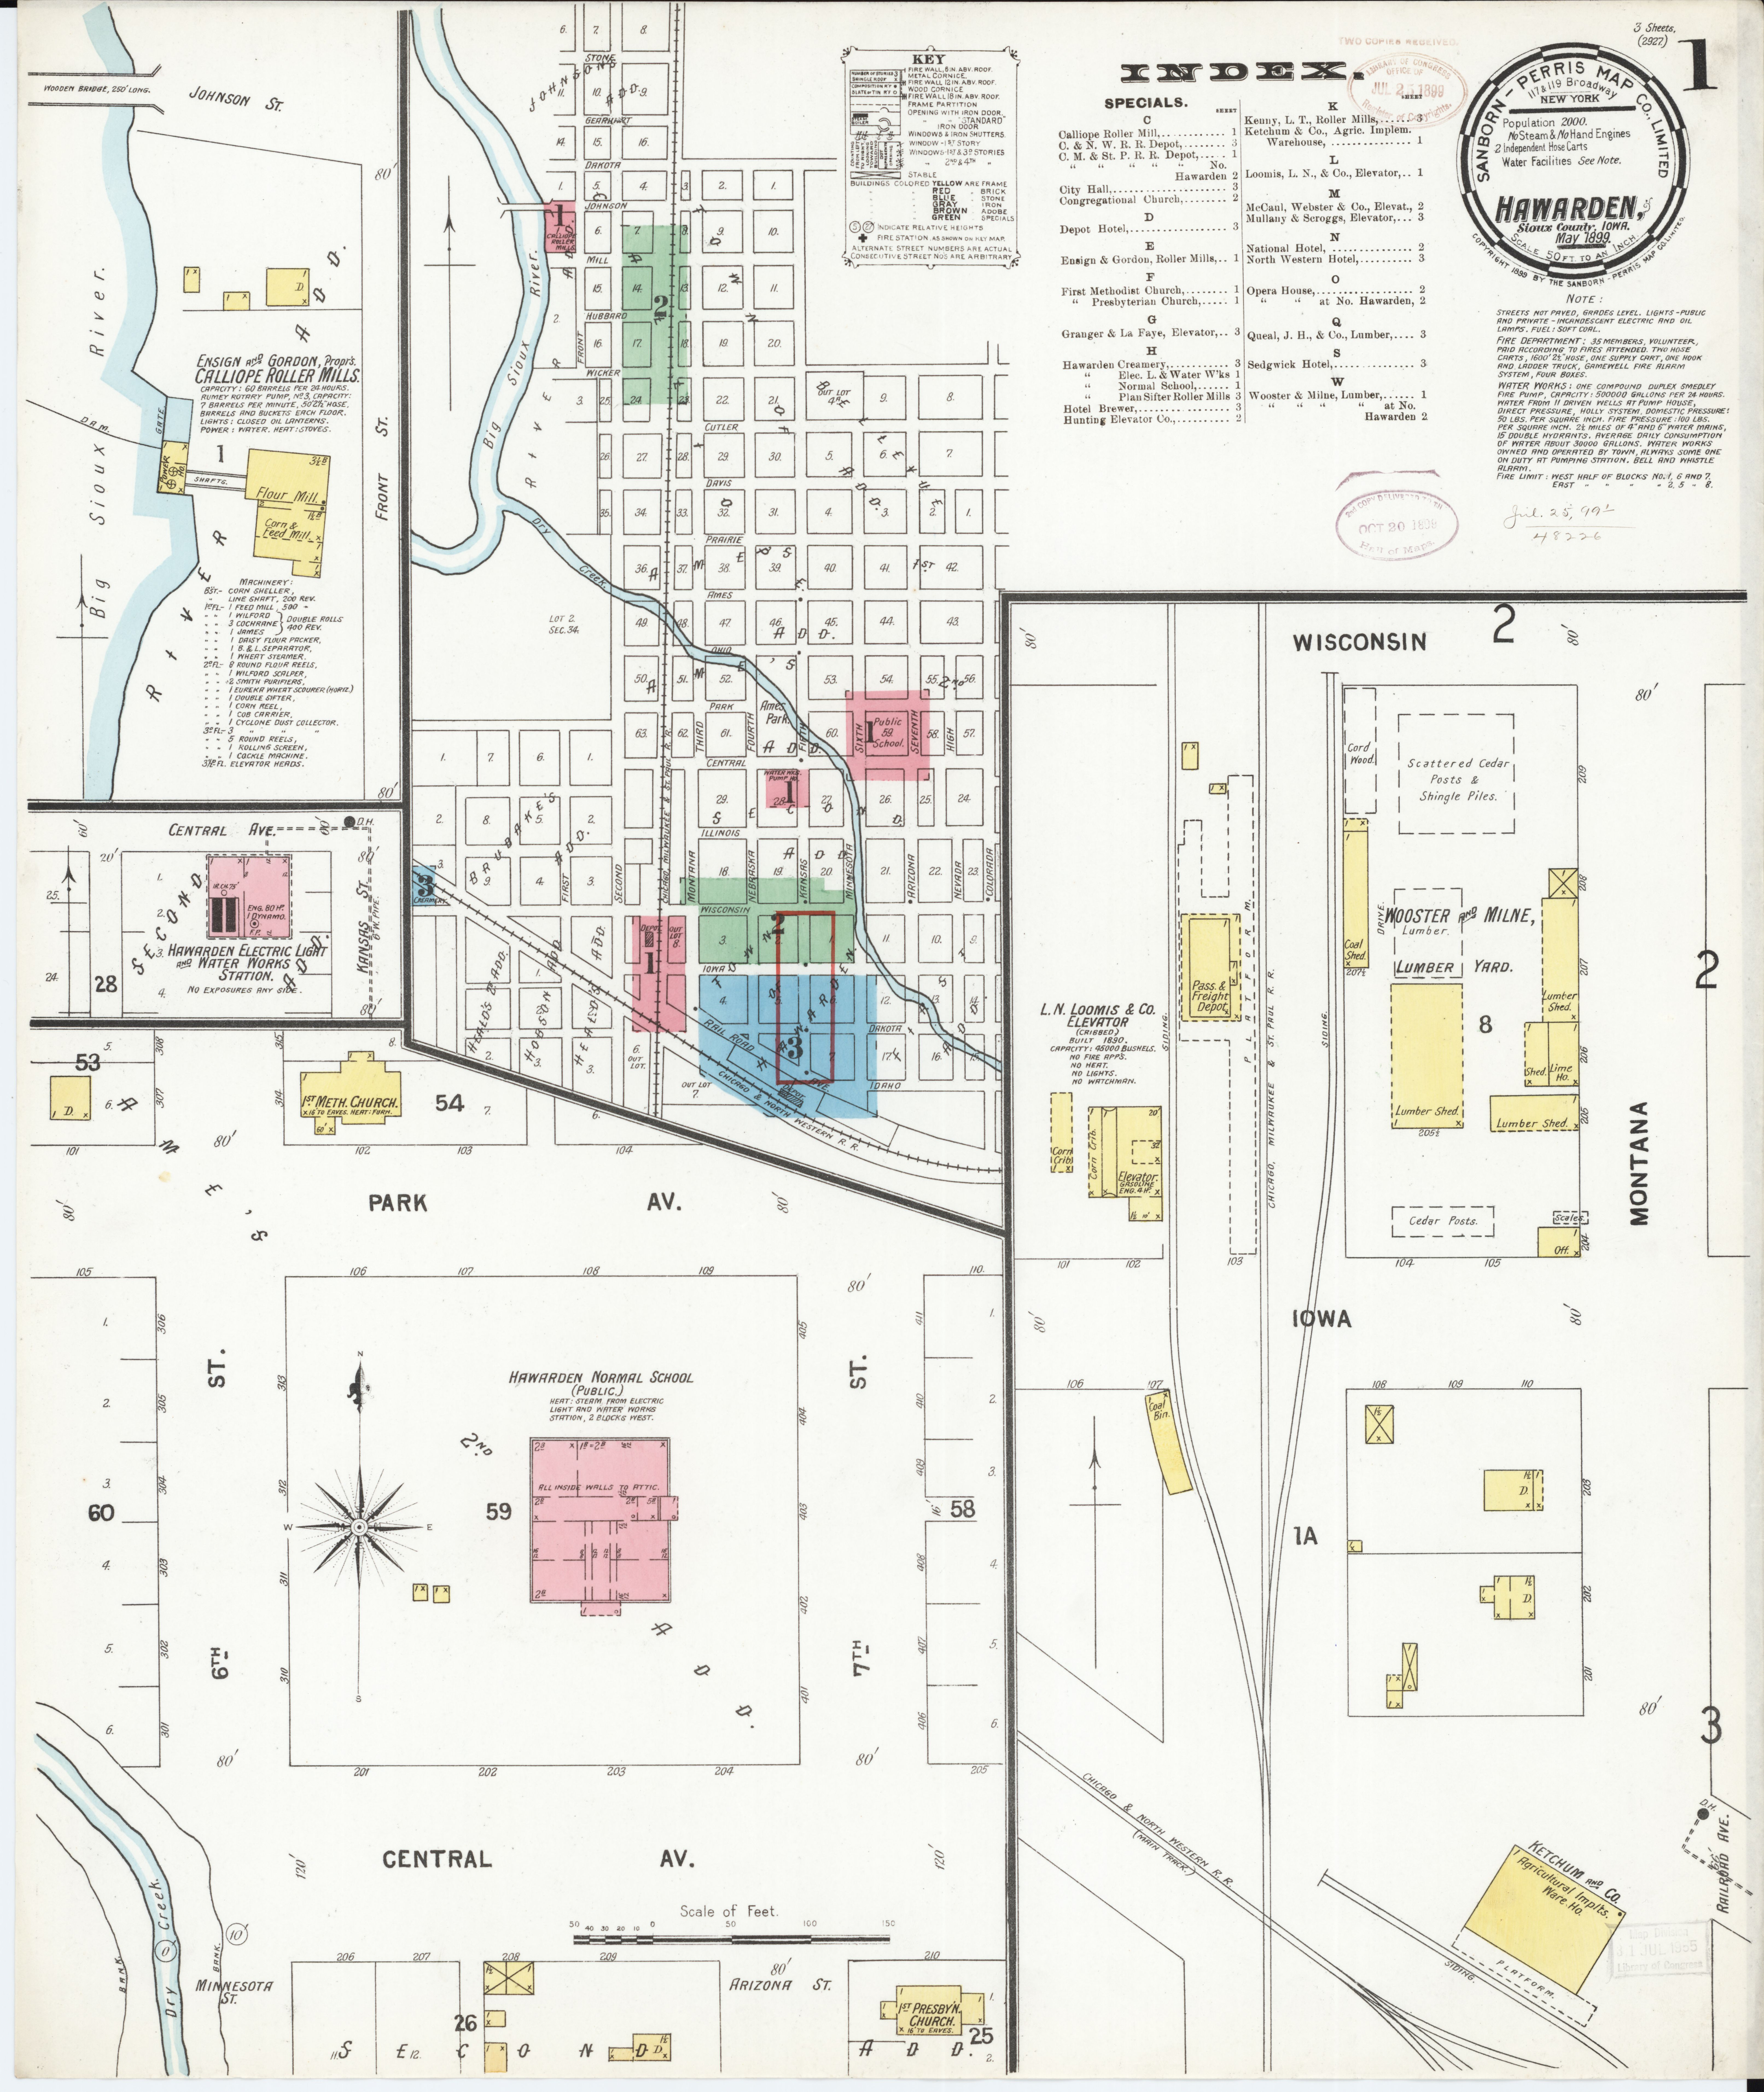 Sioux County Iowa Map.File Sanborn Fire Insurance Map From Hawarden Sioux County Iowa